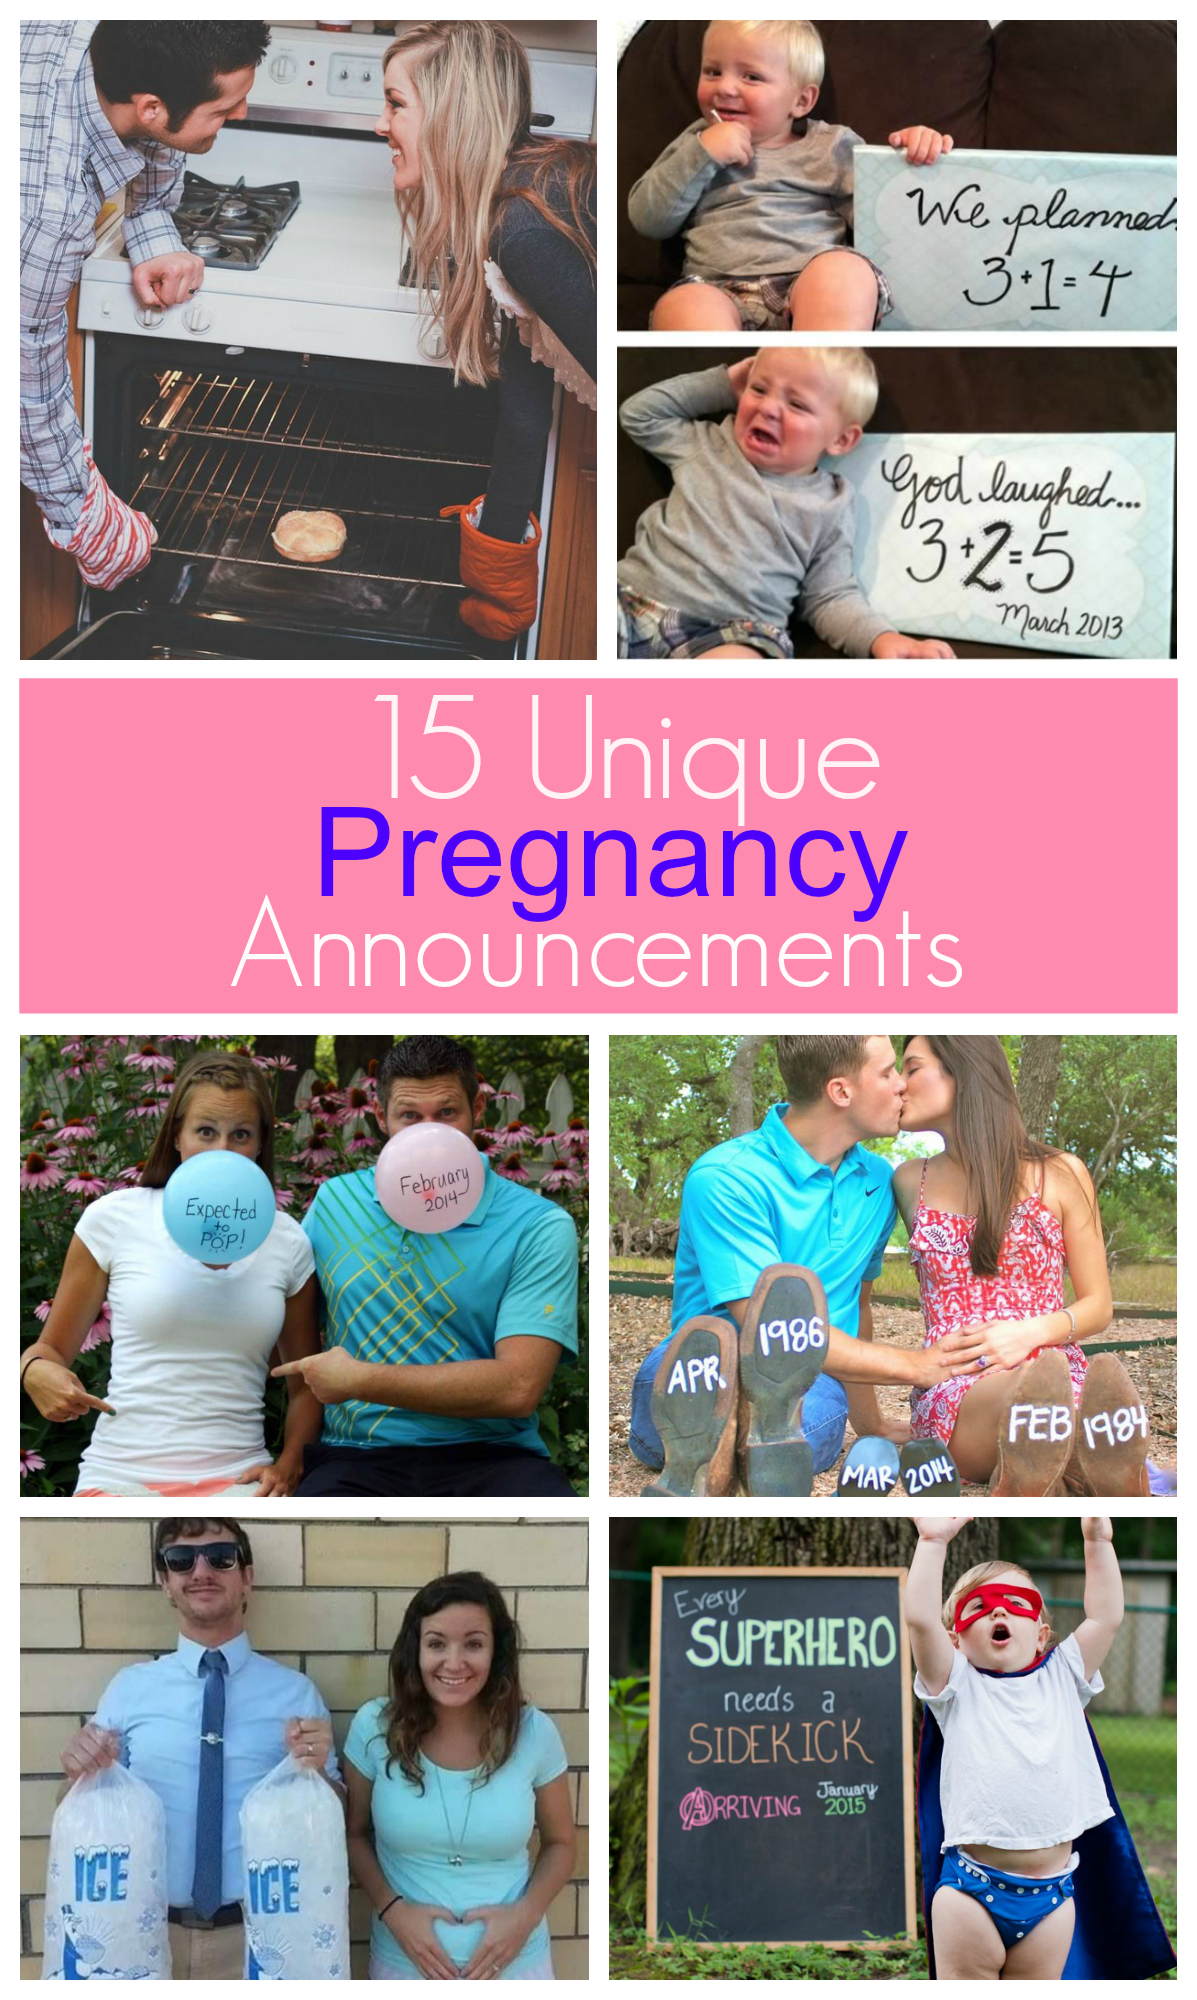 15 Unique Pregnancy Announcements & New Panorama Prenatal ...